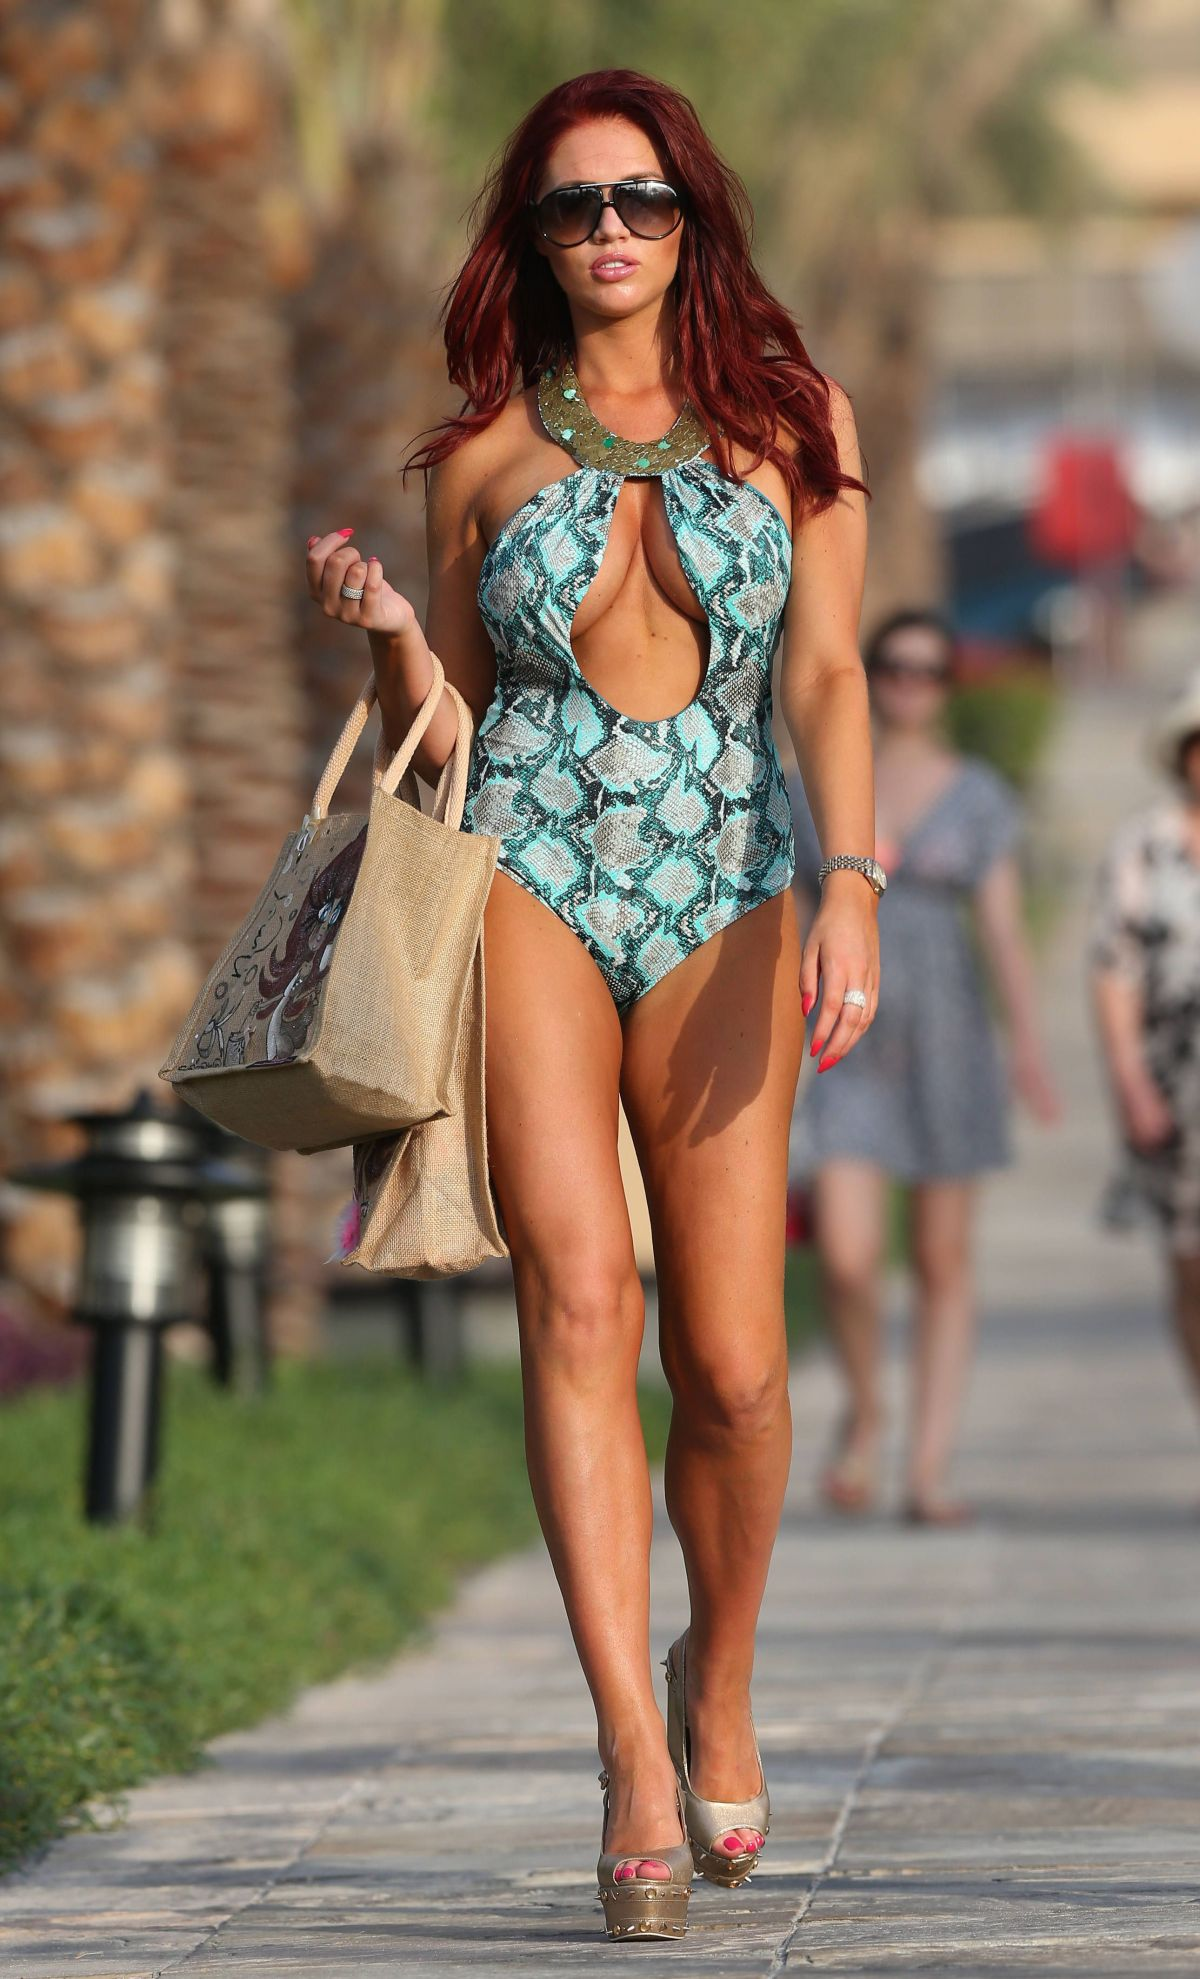 Amy Childs By The Pool At UAE